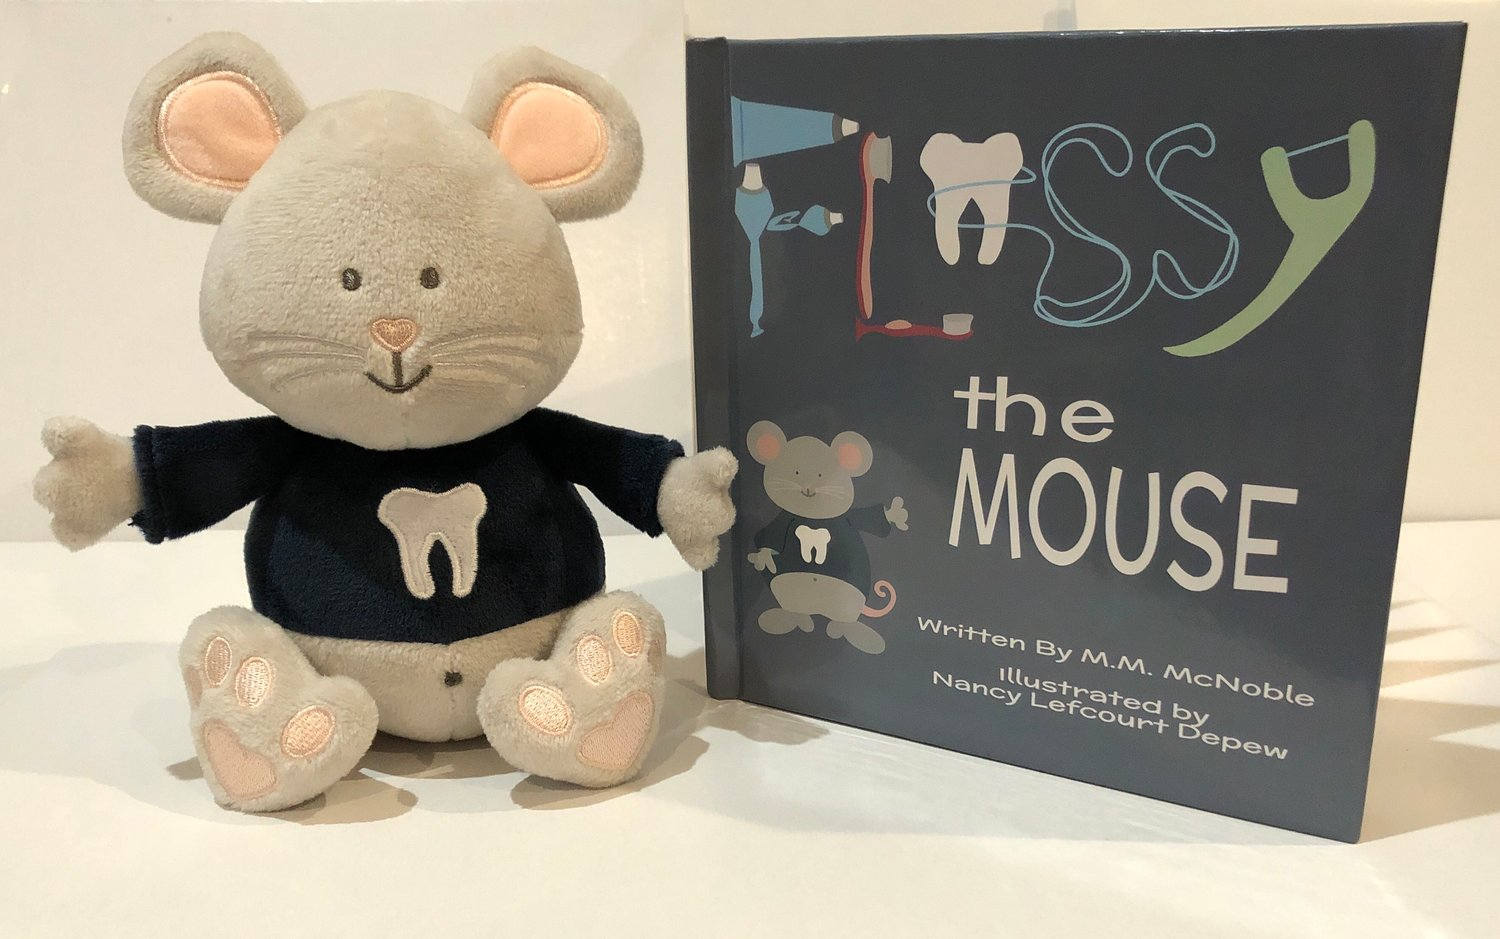 """Flossy the Mouse"" is sold as a set, with both the book and a plush toy Flossy, who will motivate children to brush their teeth."